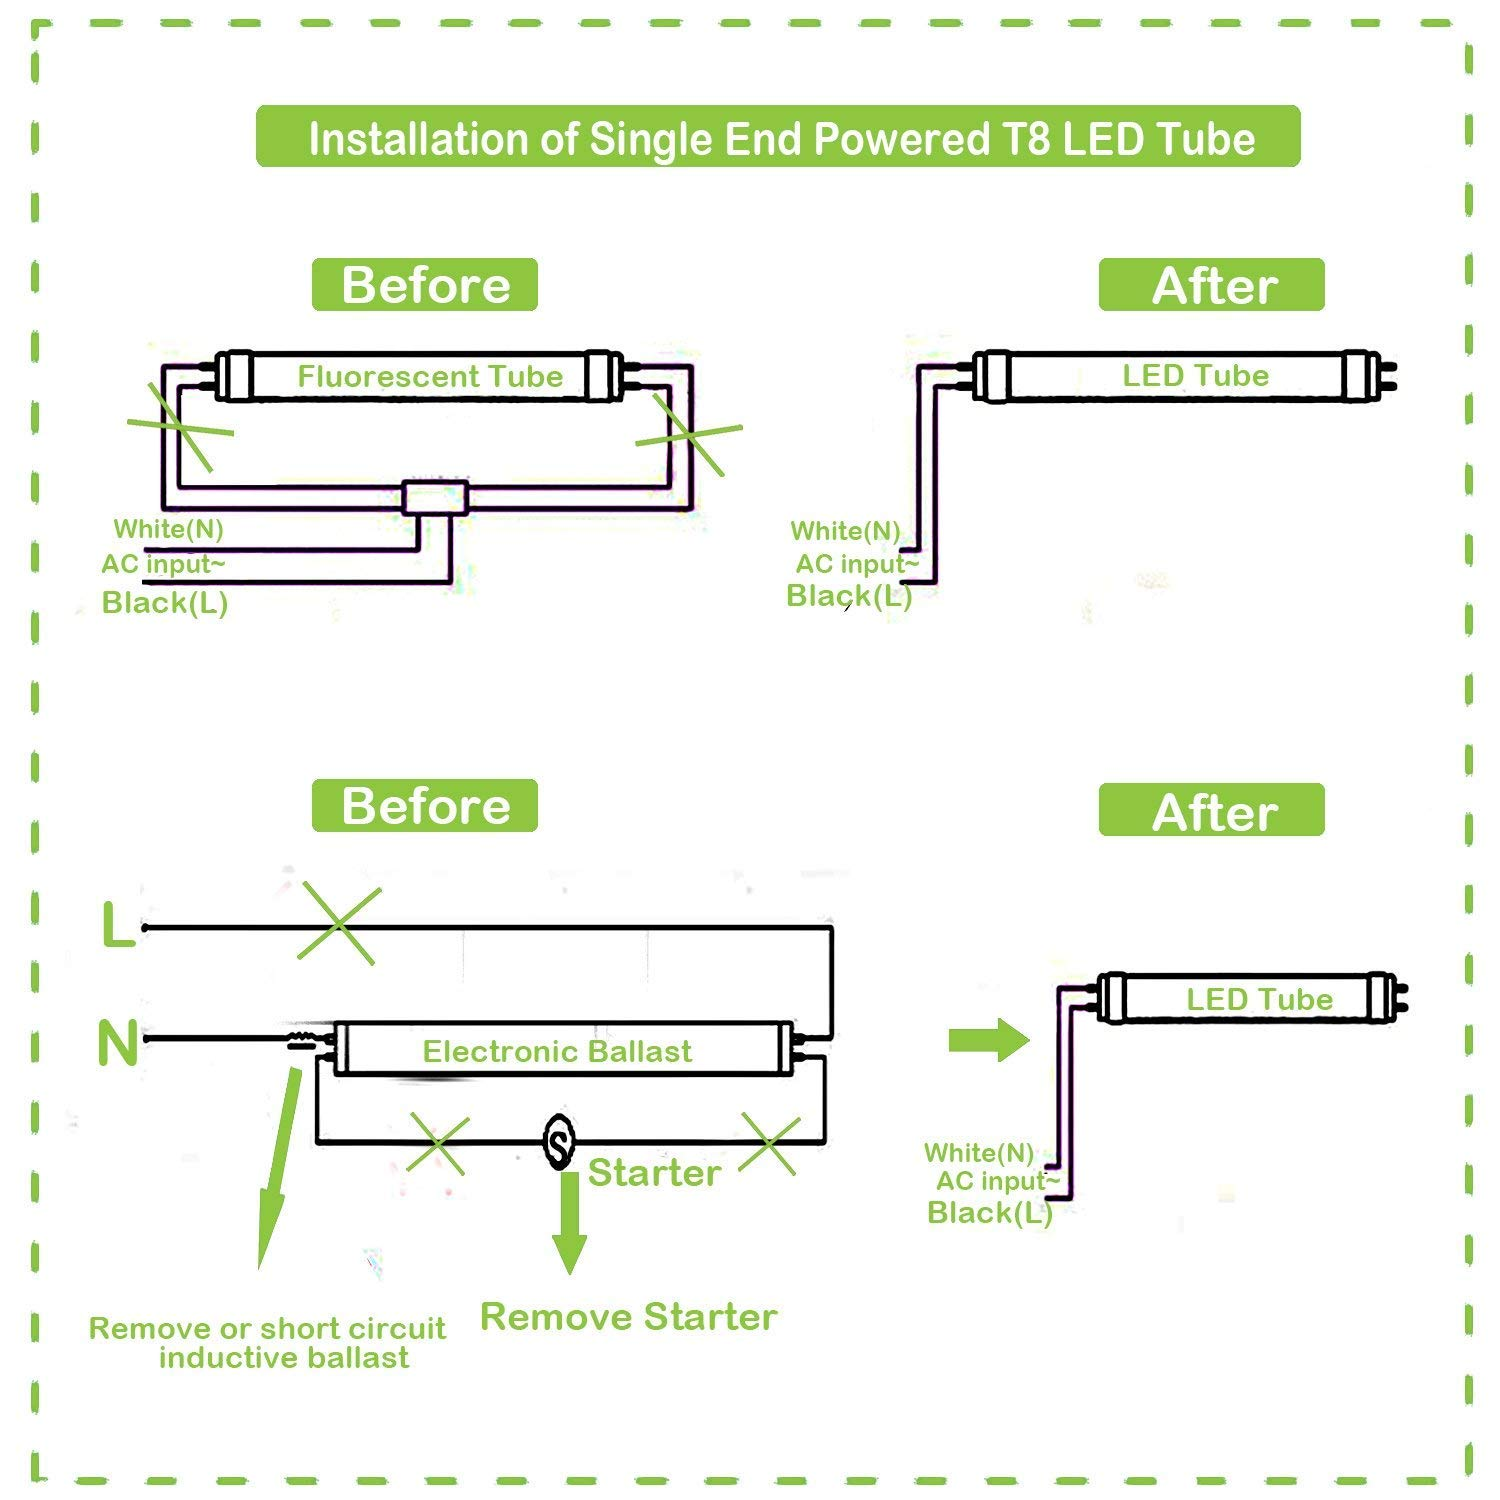 hykolity 6 pack t8 t10 t12 led light tube 4ft with g13 tombstone